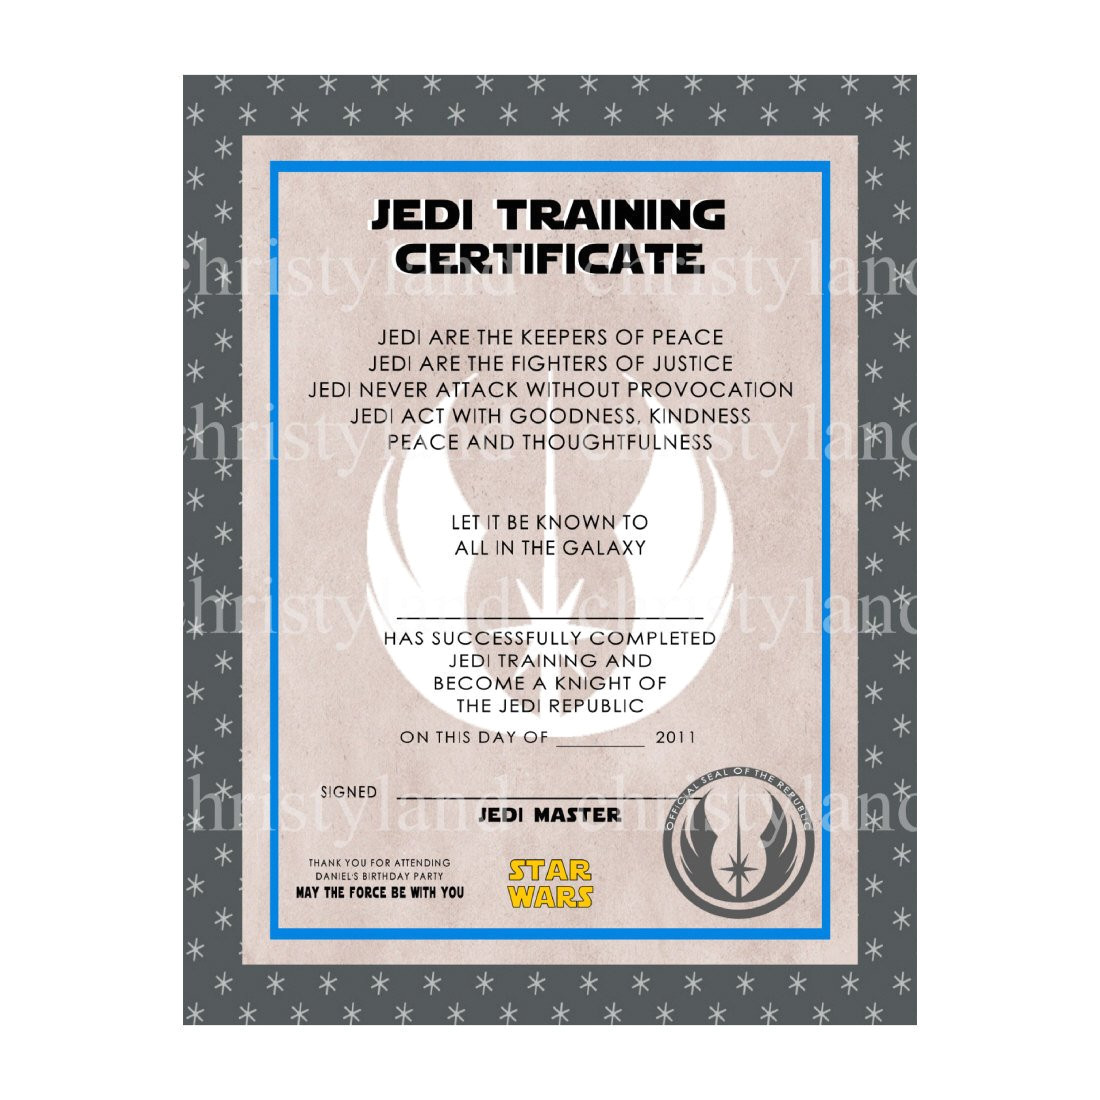 star wars jedi training certificate template